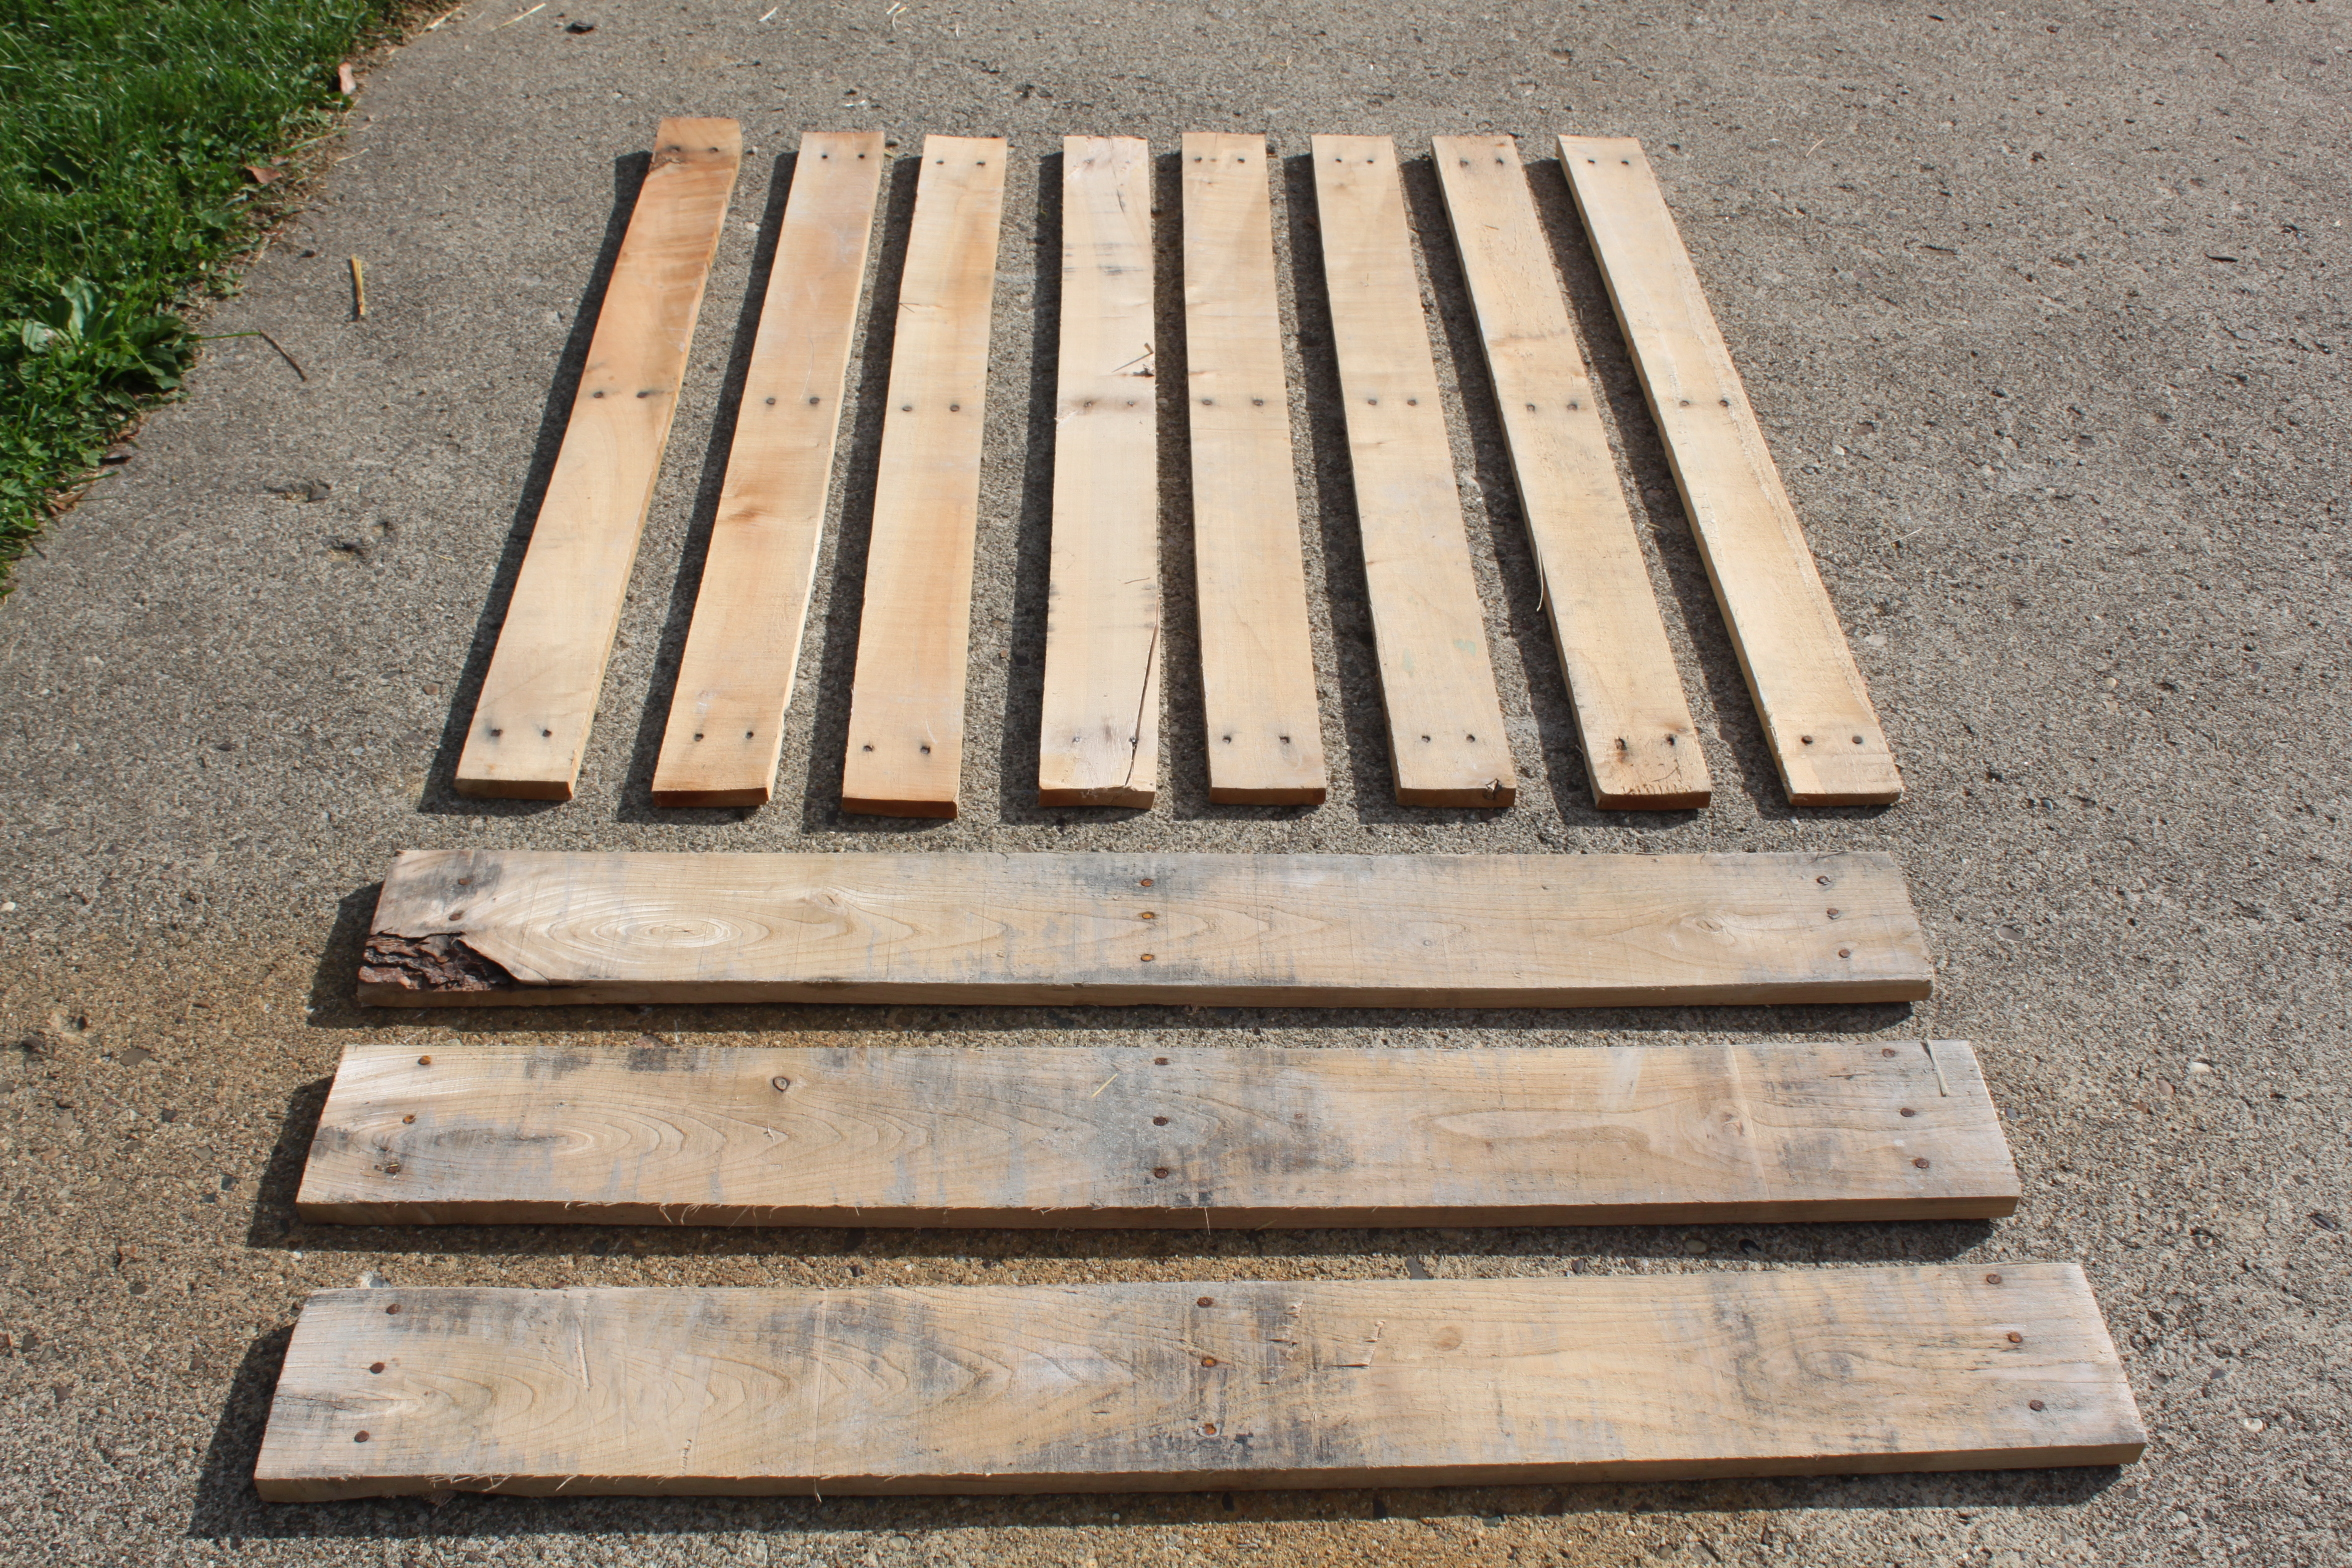 Projects Out Wood Pallets Plans woodworking plans coat rack